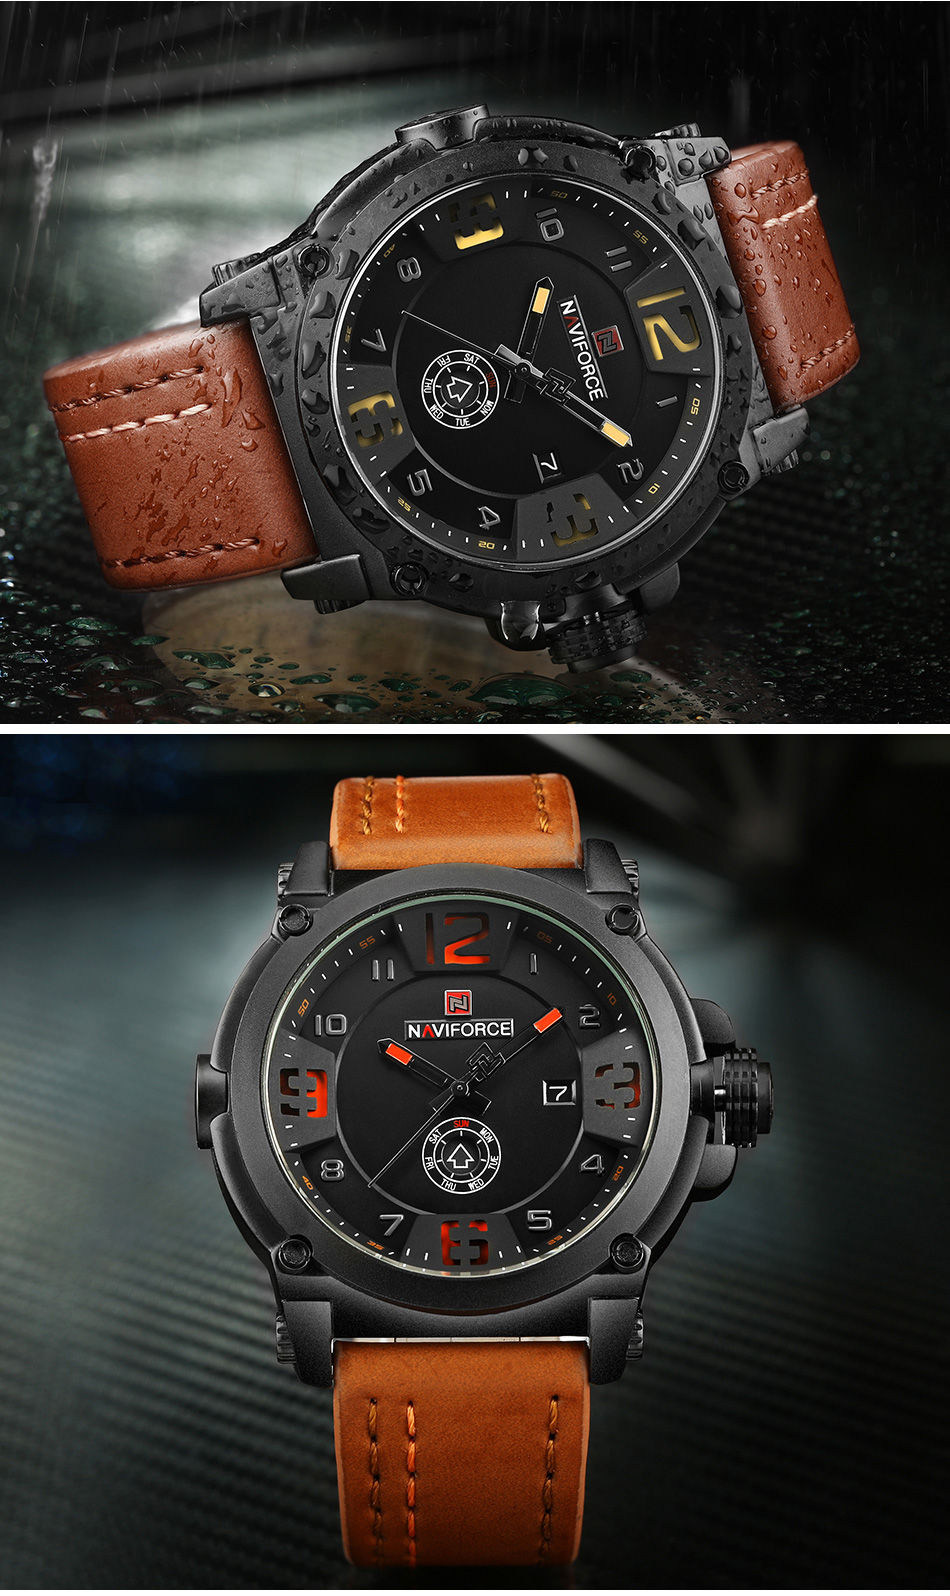 NAVIFORCE Top Luxury Brand Men Sports Military Quartz Watch Man Analog Date Clock Leather Strap Wristwatch Relogio Masculino HTB1 Iime8WD3KVjSZFsq6AqkpXau